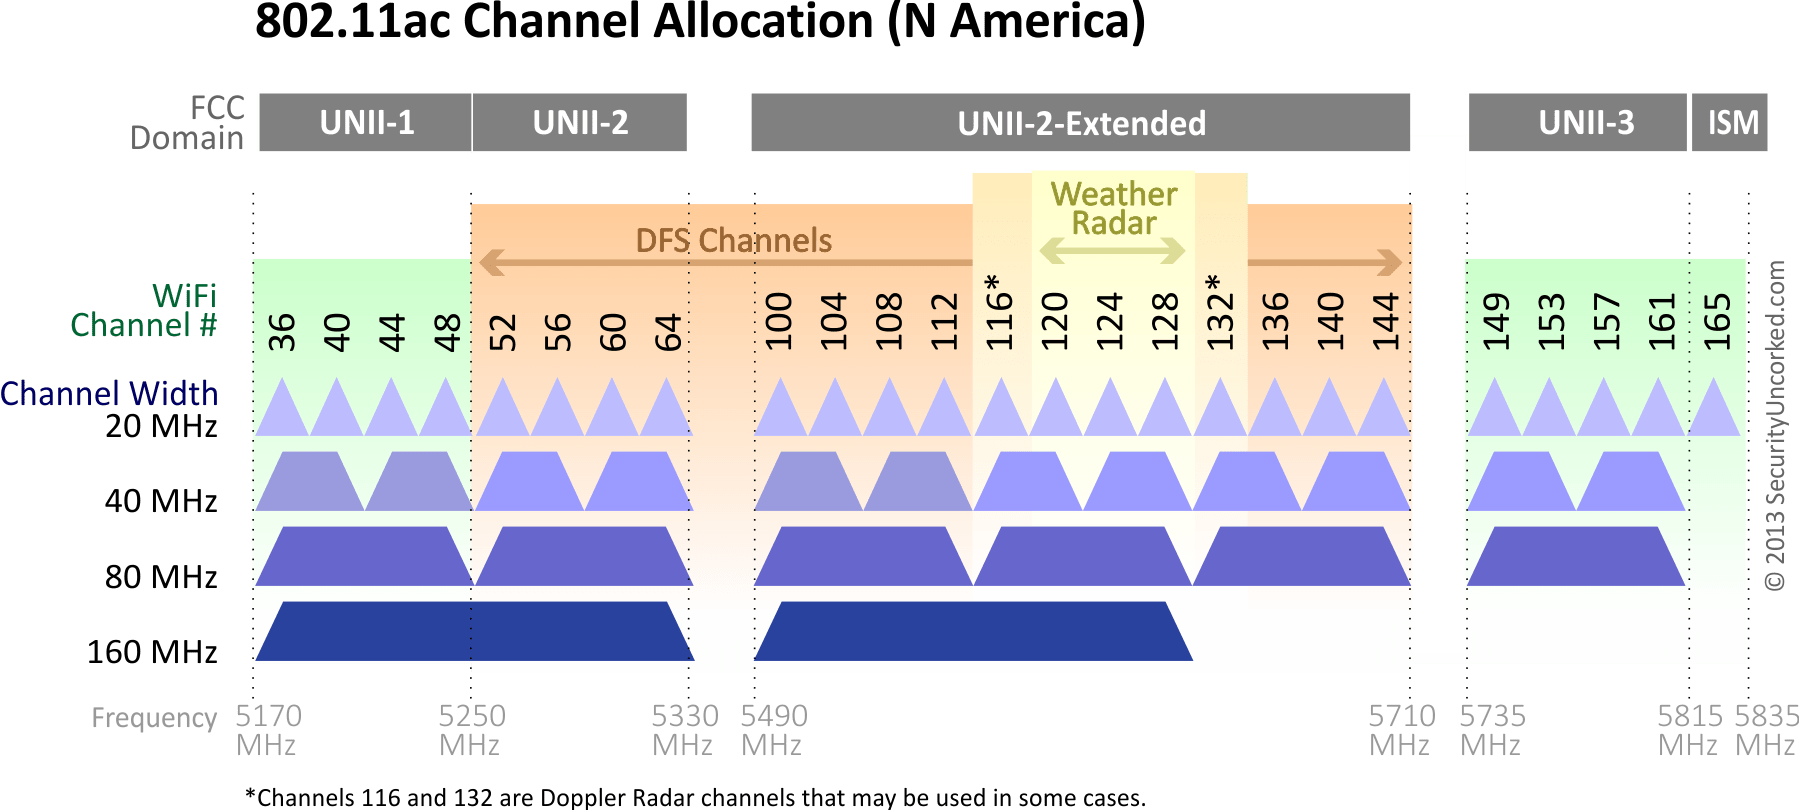 hight resolution of 5ghz channels in north america